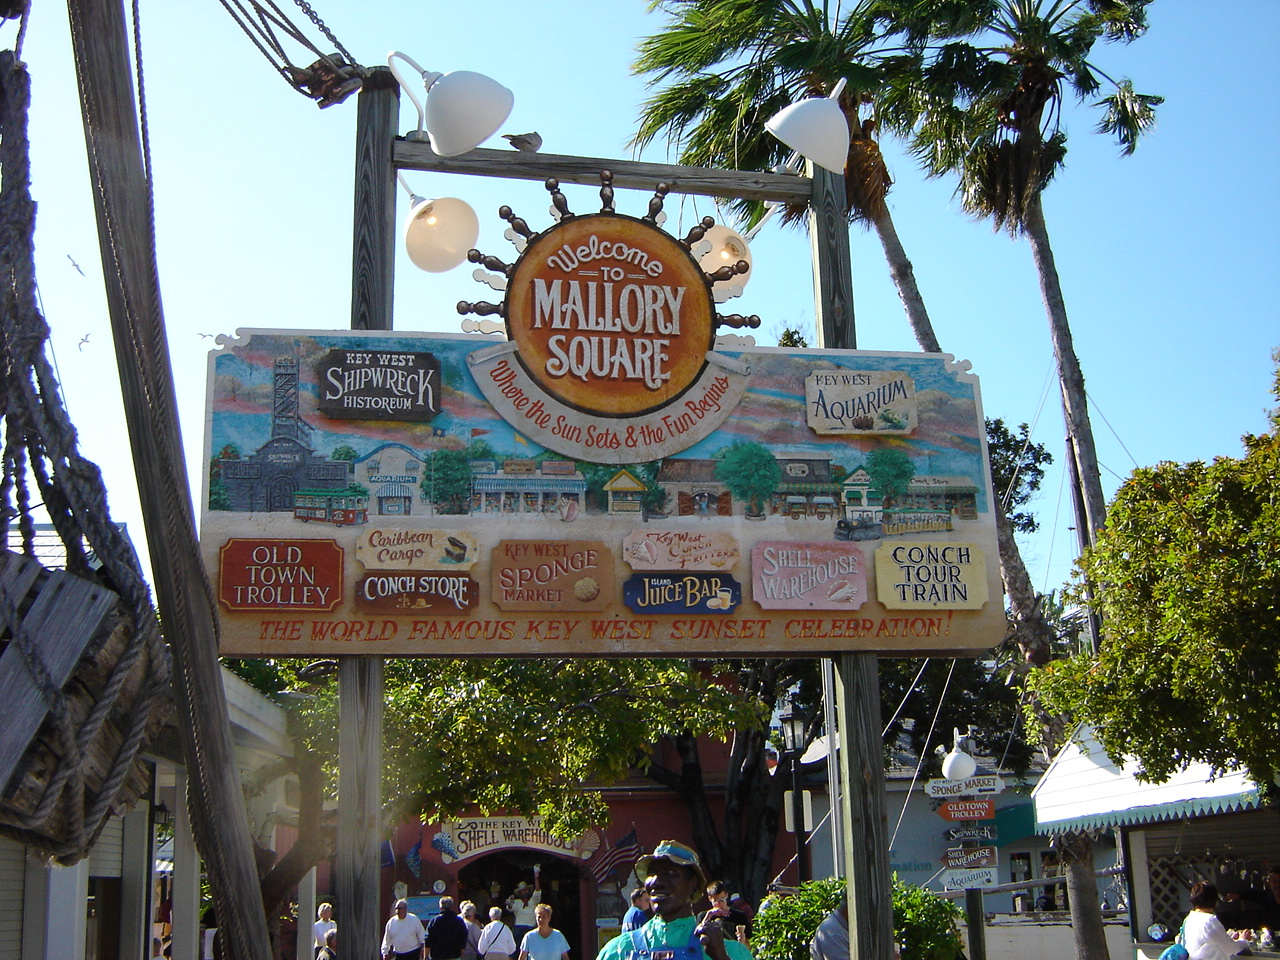 Popular Destination in the Florida Keys-Mallory Square